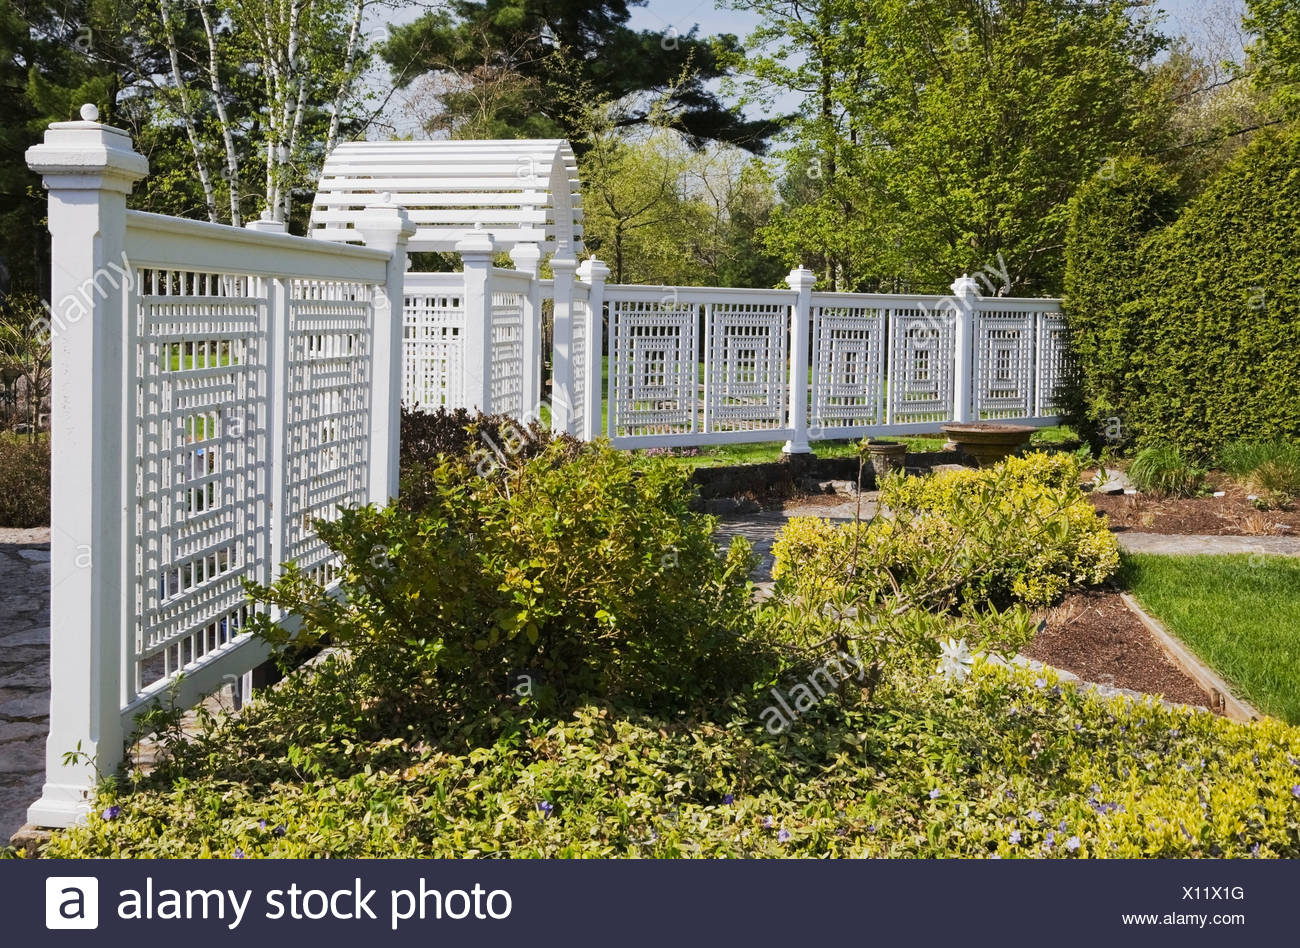 A White Wooden Fence With Trellis In A Landscaped Back Yard Garden In Spring;Quebec Canada Stock Photo